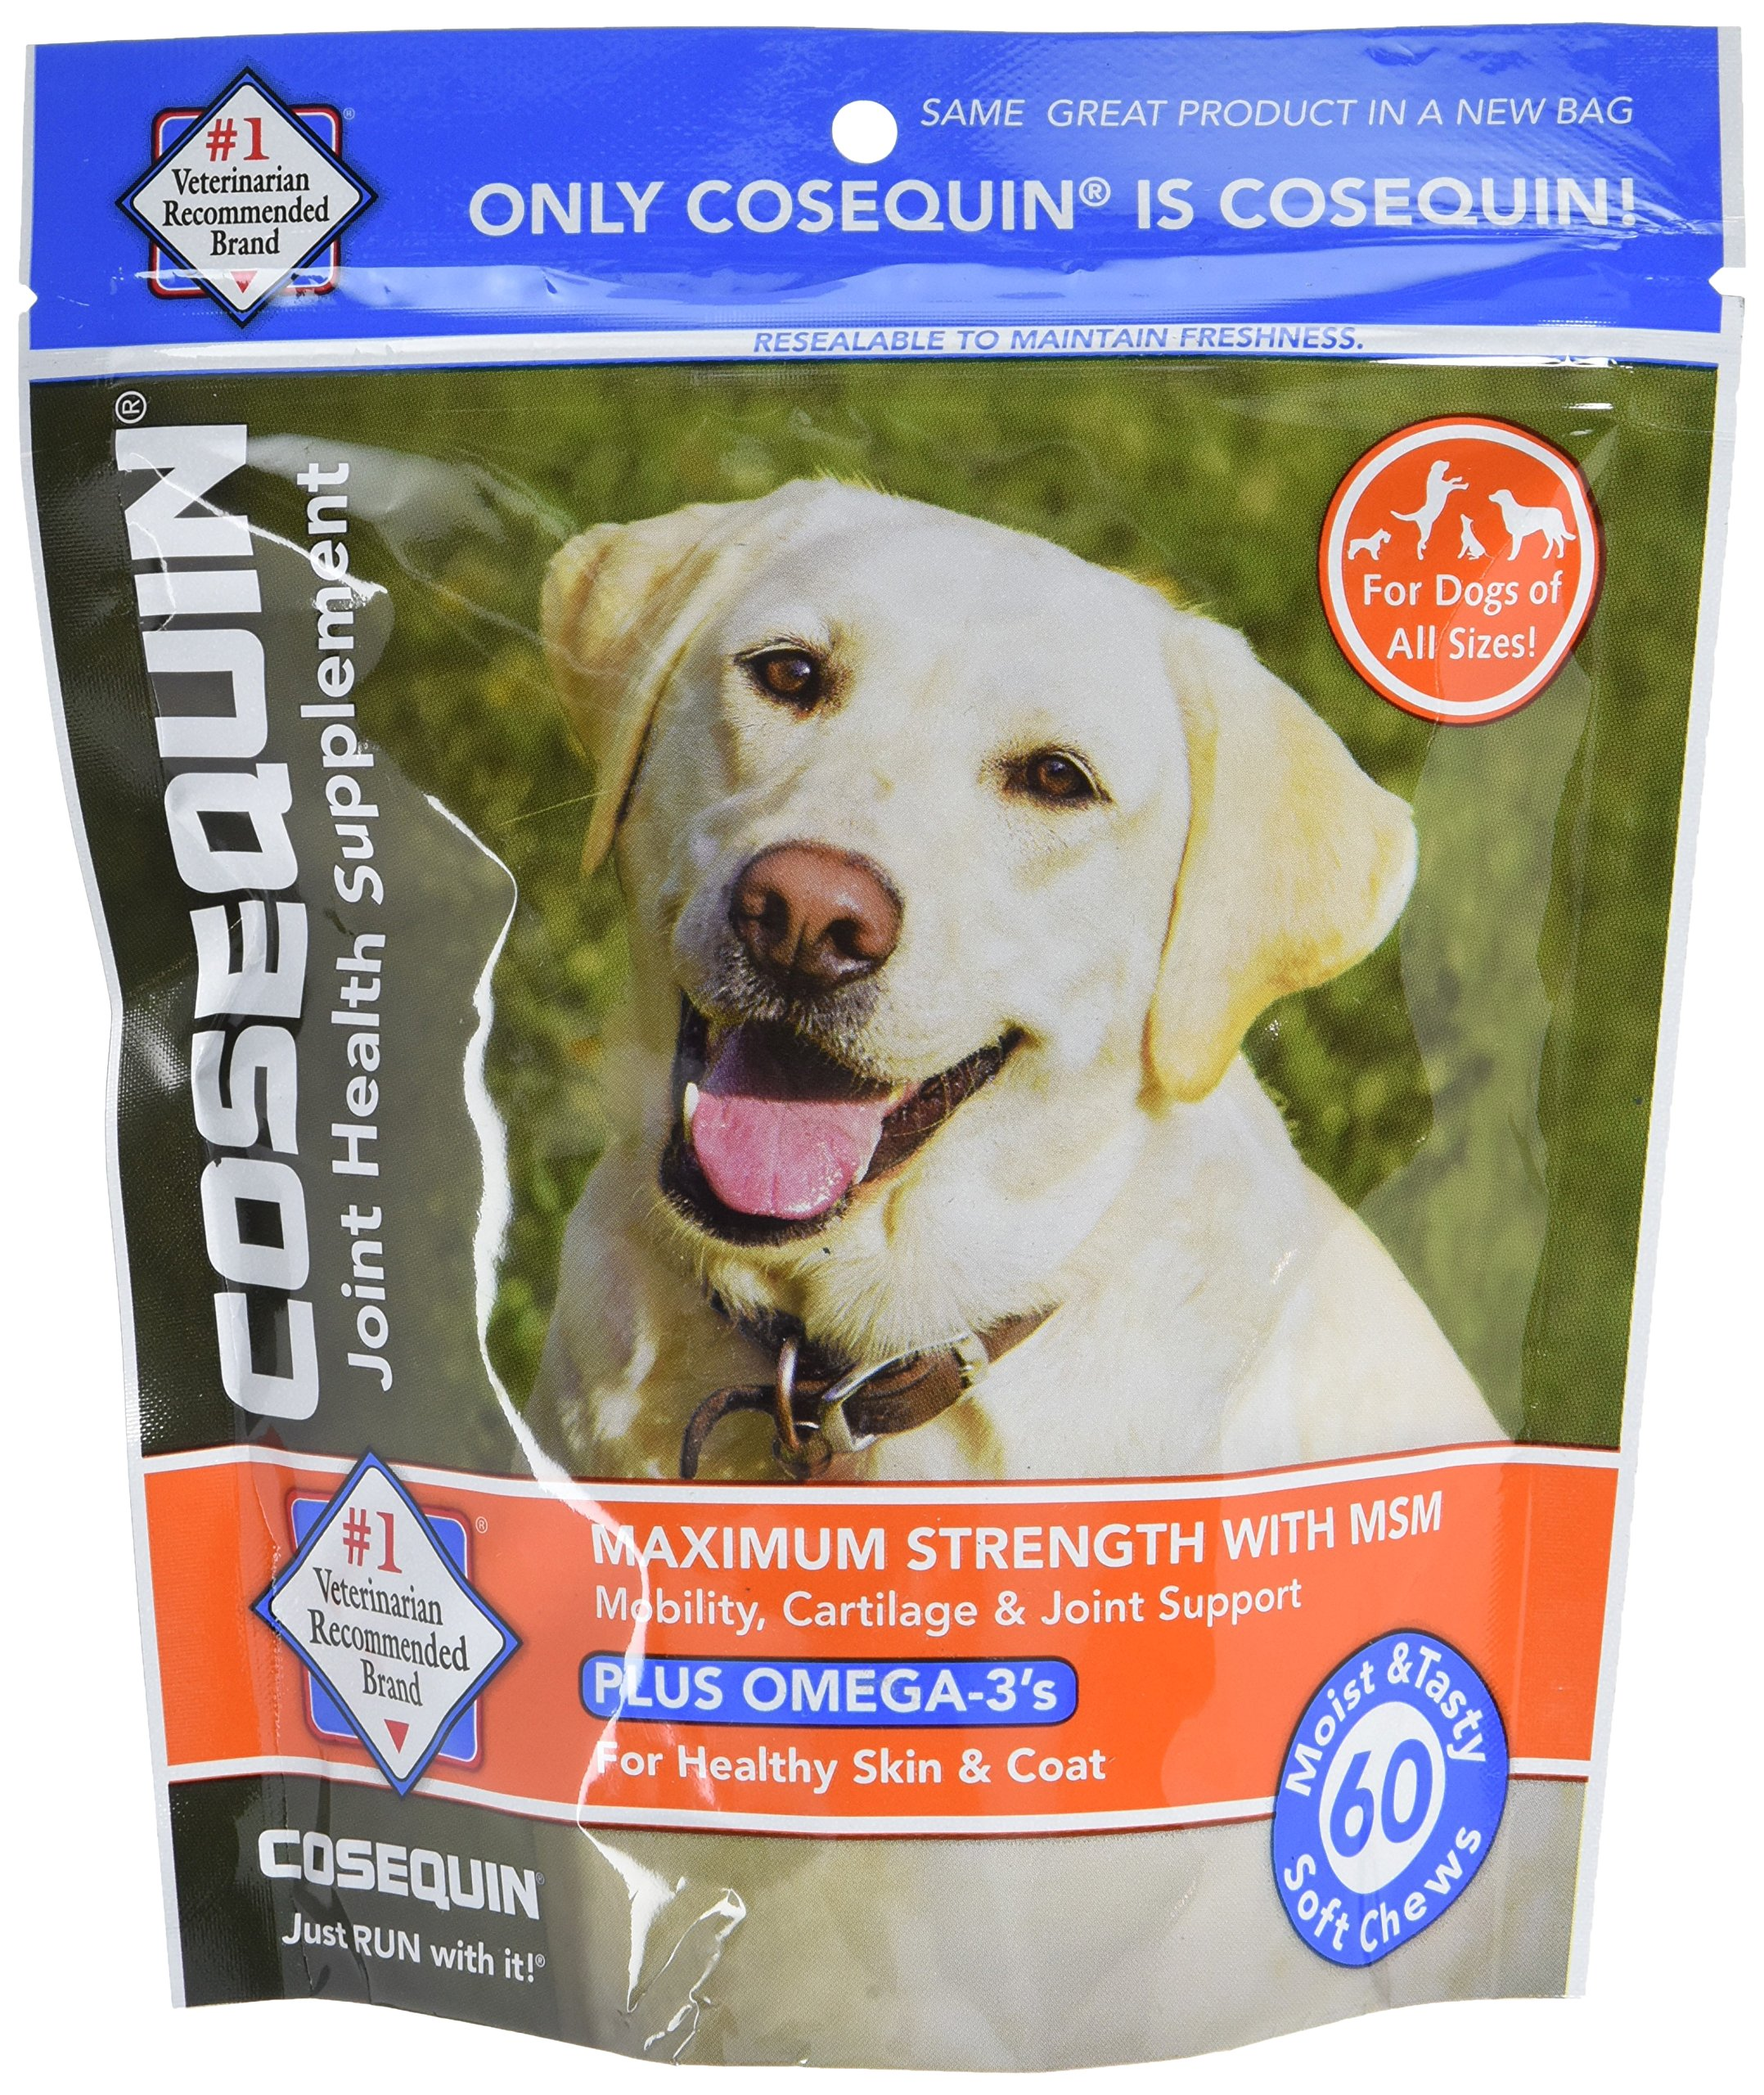 Cosequin Soft Chews with MSM and Omega 3-s, 60ct